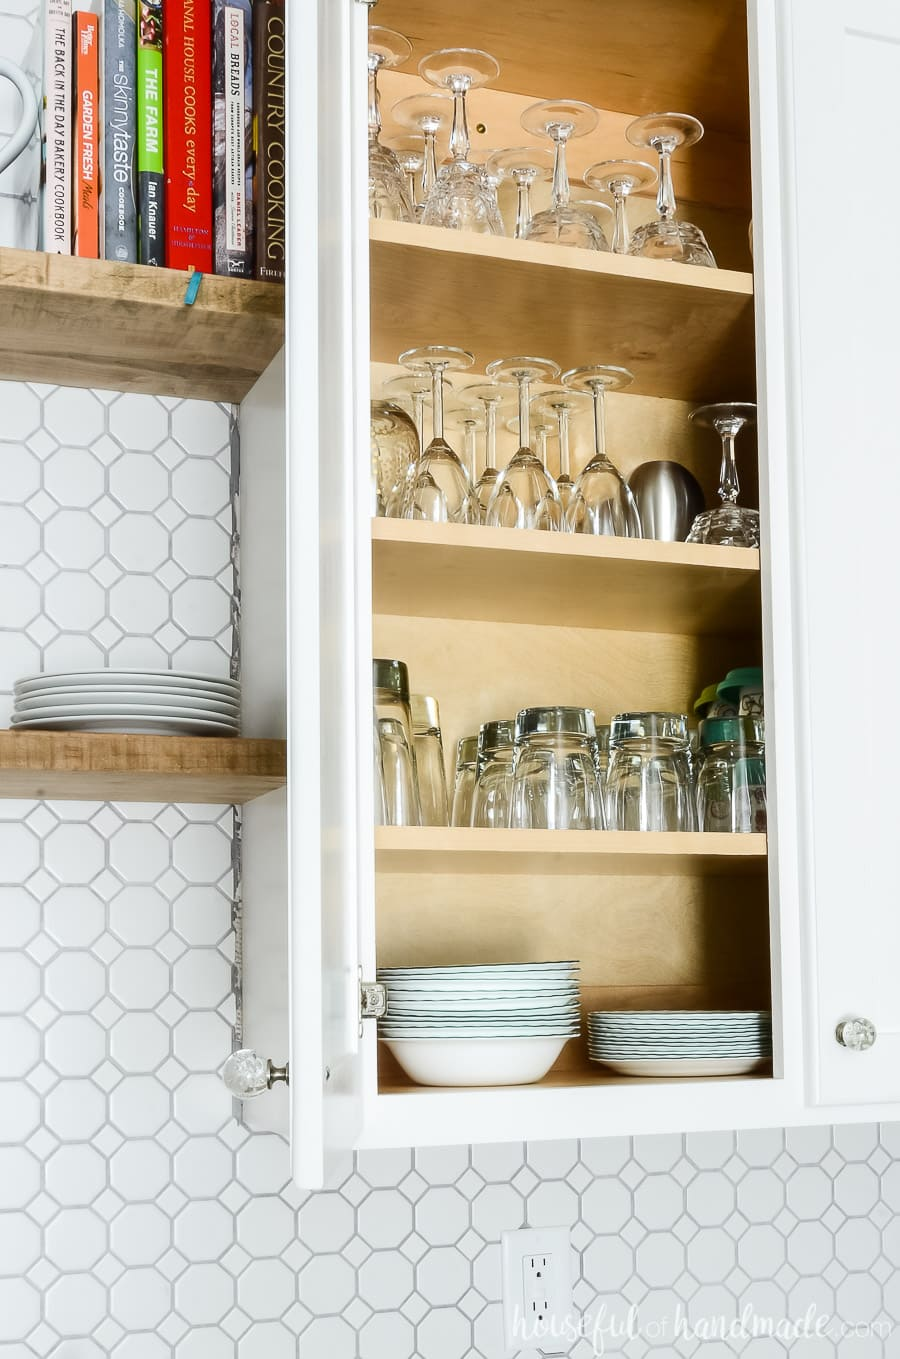 """White 42"""" upper cabinet with goblets, wine glasses, cups and bowls inside with one door open showing the concealed hinges on the inside of the cabinet door."""